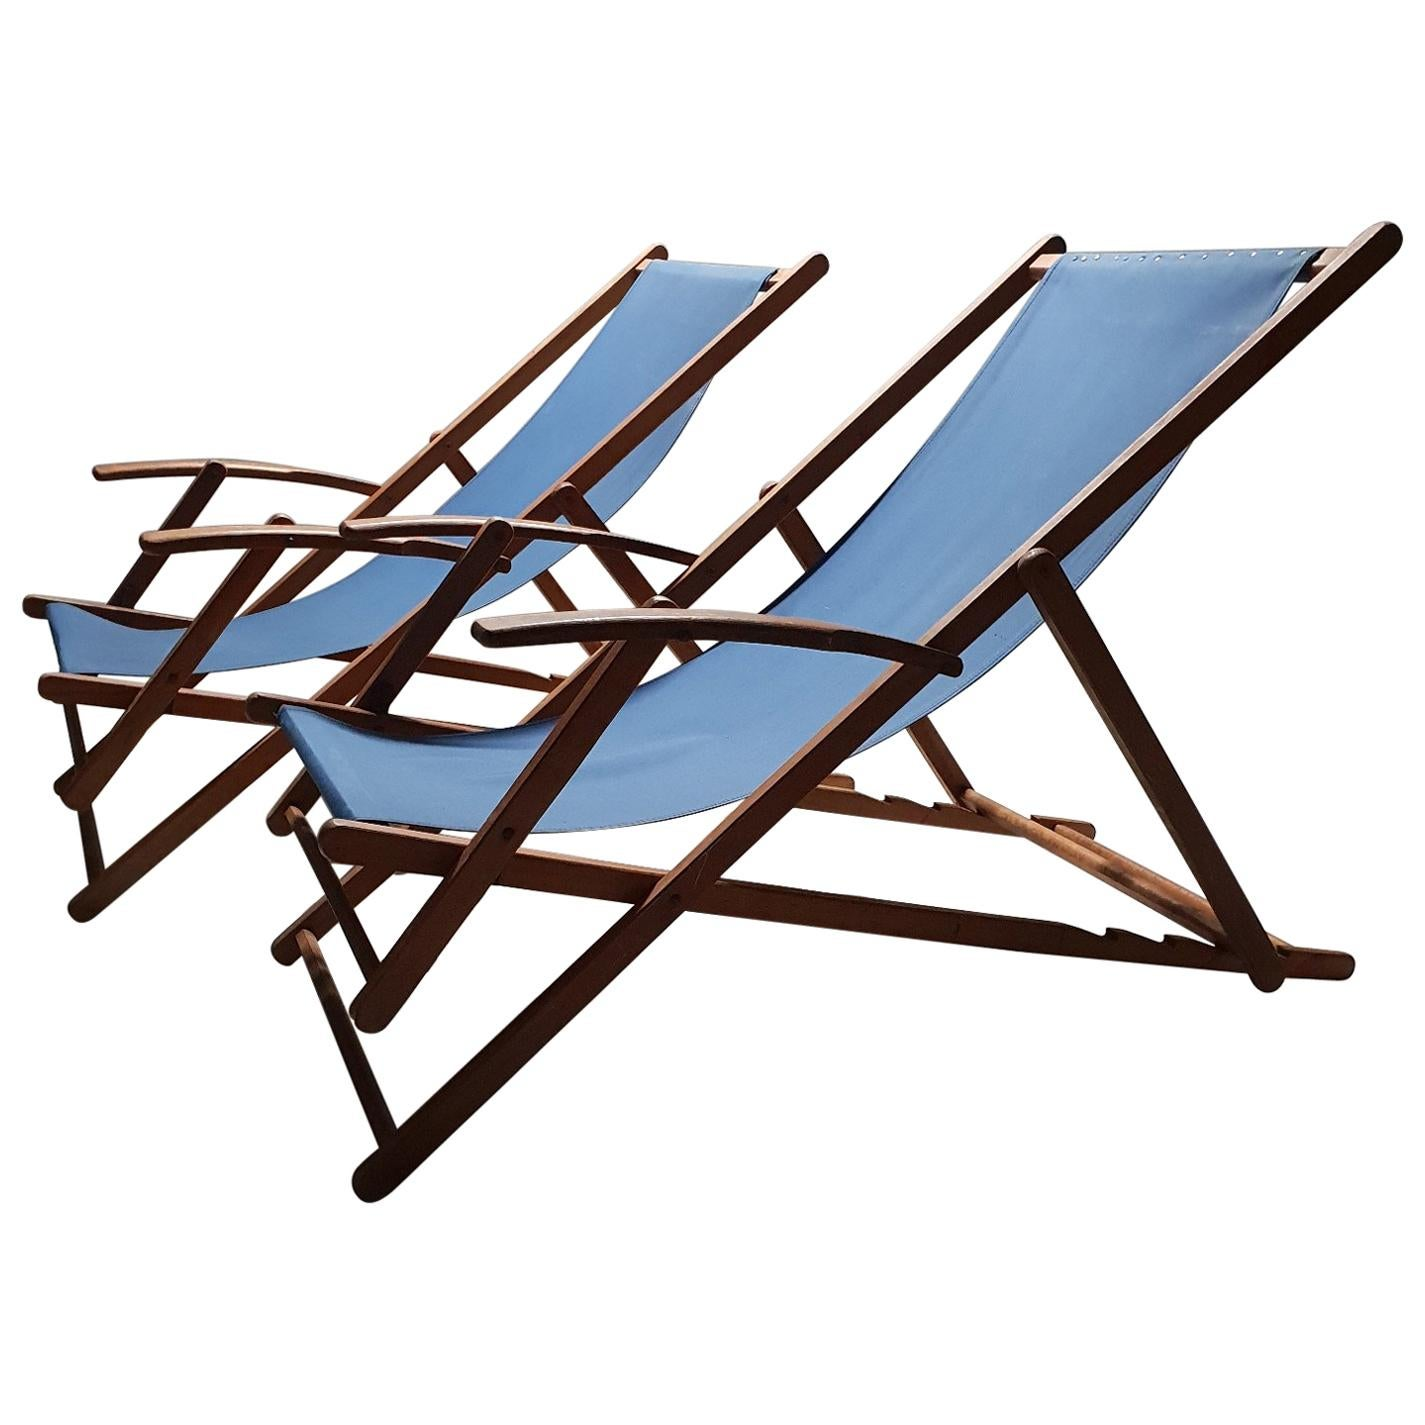 Beach Chairs On Sale Pair Of Vintage Retro Wooden Folding Beach Chairs With Armrests And Canvas 1950s